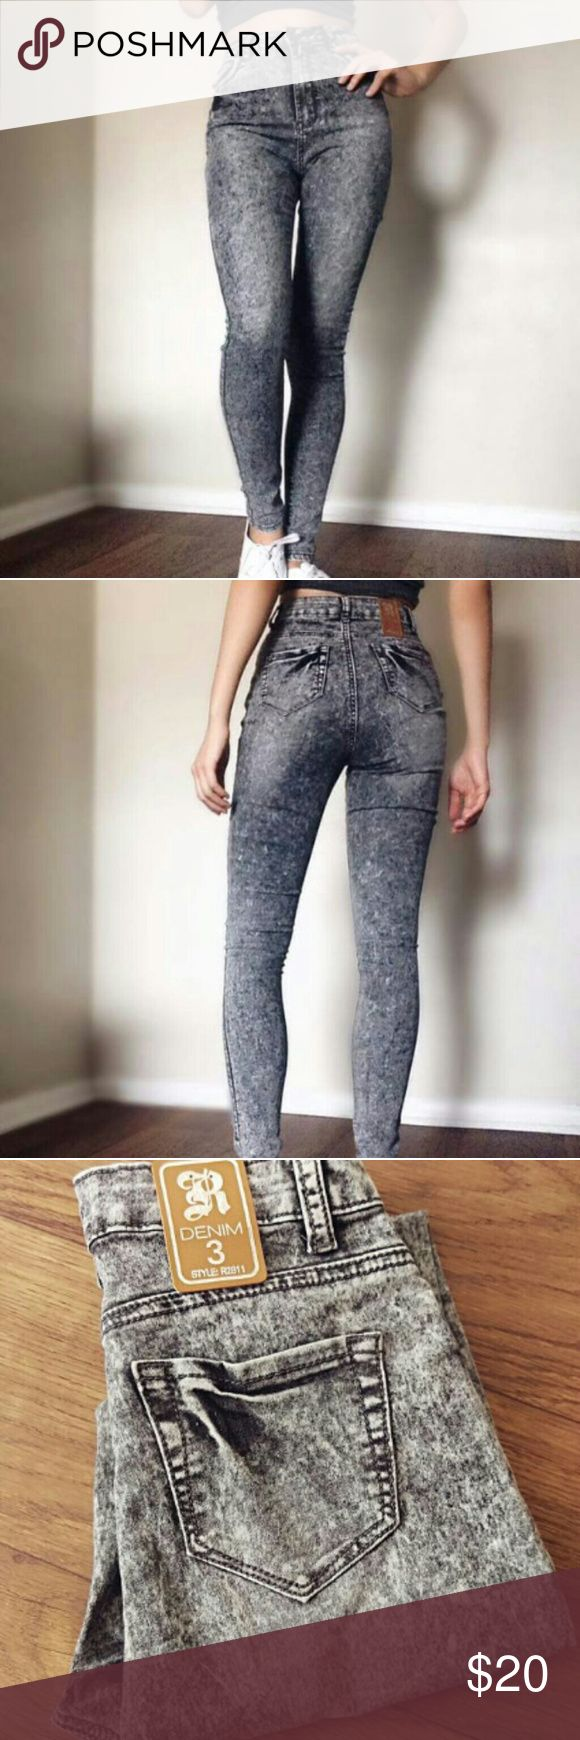 Women's high waist jeans / Bleachy Grey Note: I am the one modeling the jeans.   BRAND SPANKIN NEW! Tag on the back. Brand: ROX DENIM  Grey bleachy look  Size: 3     Note: I try to describe my items to the best of my knowledge and list if there is any noticeable imperfections Pants Skinny